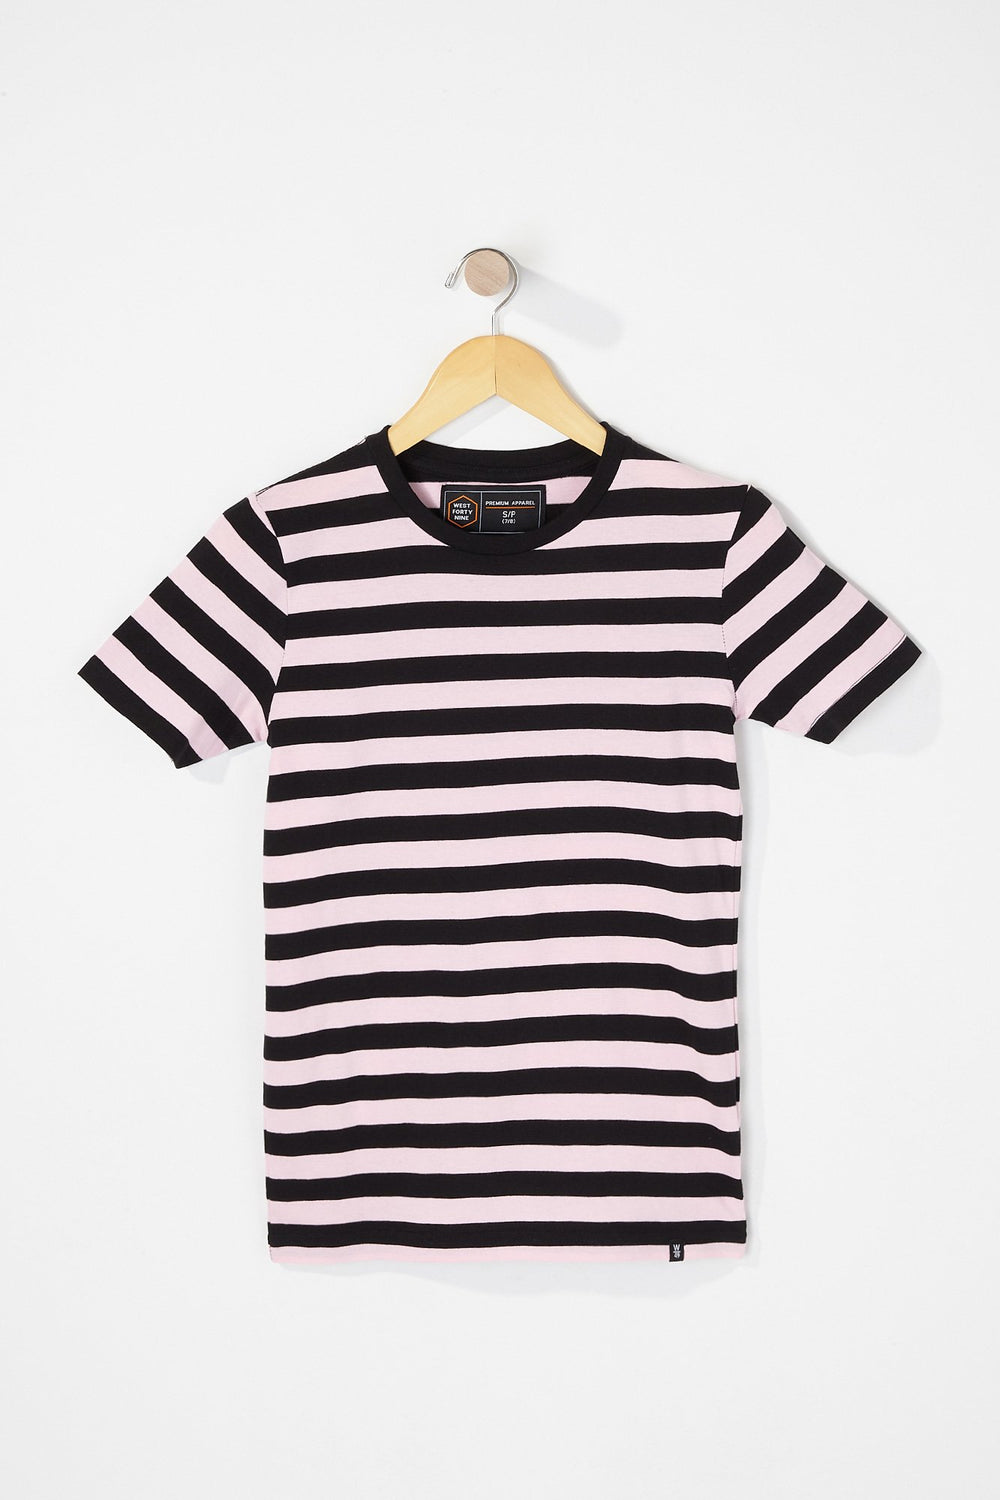 West49 Boys Striped T-Shirt Pink